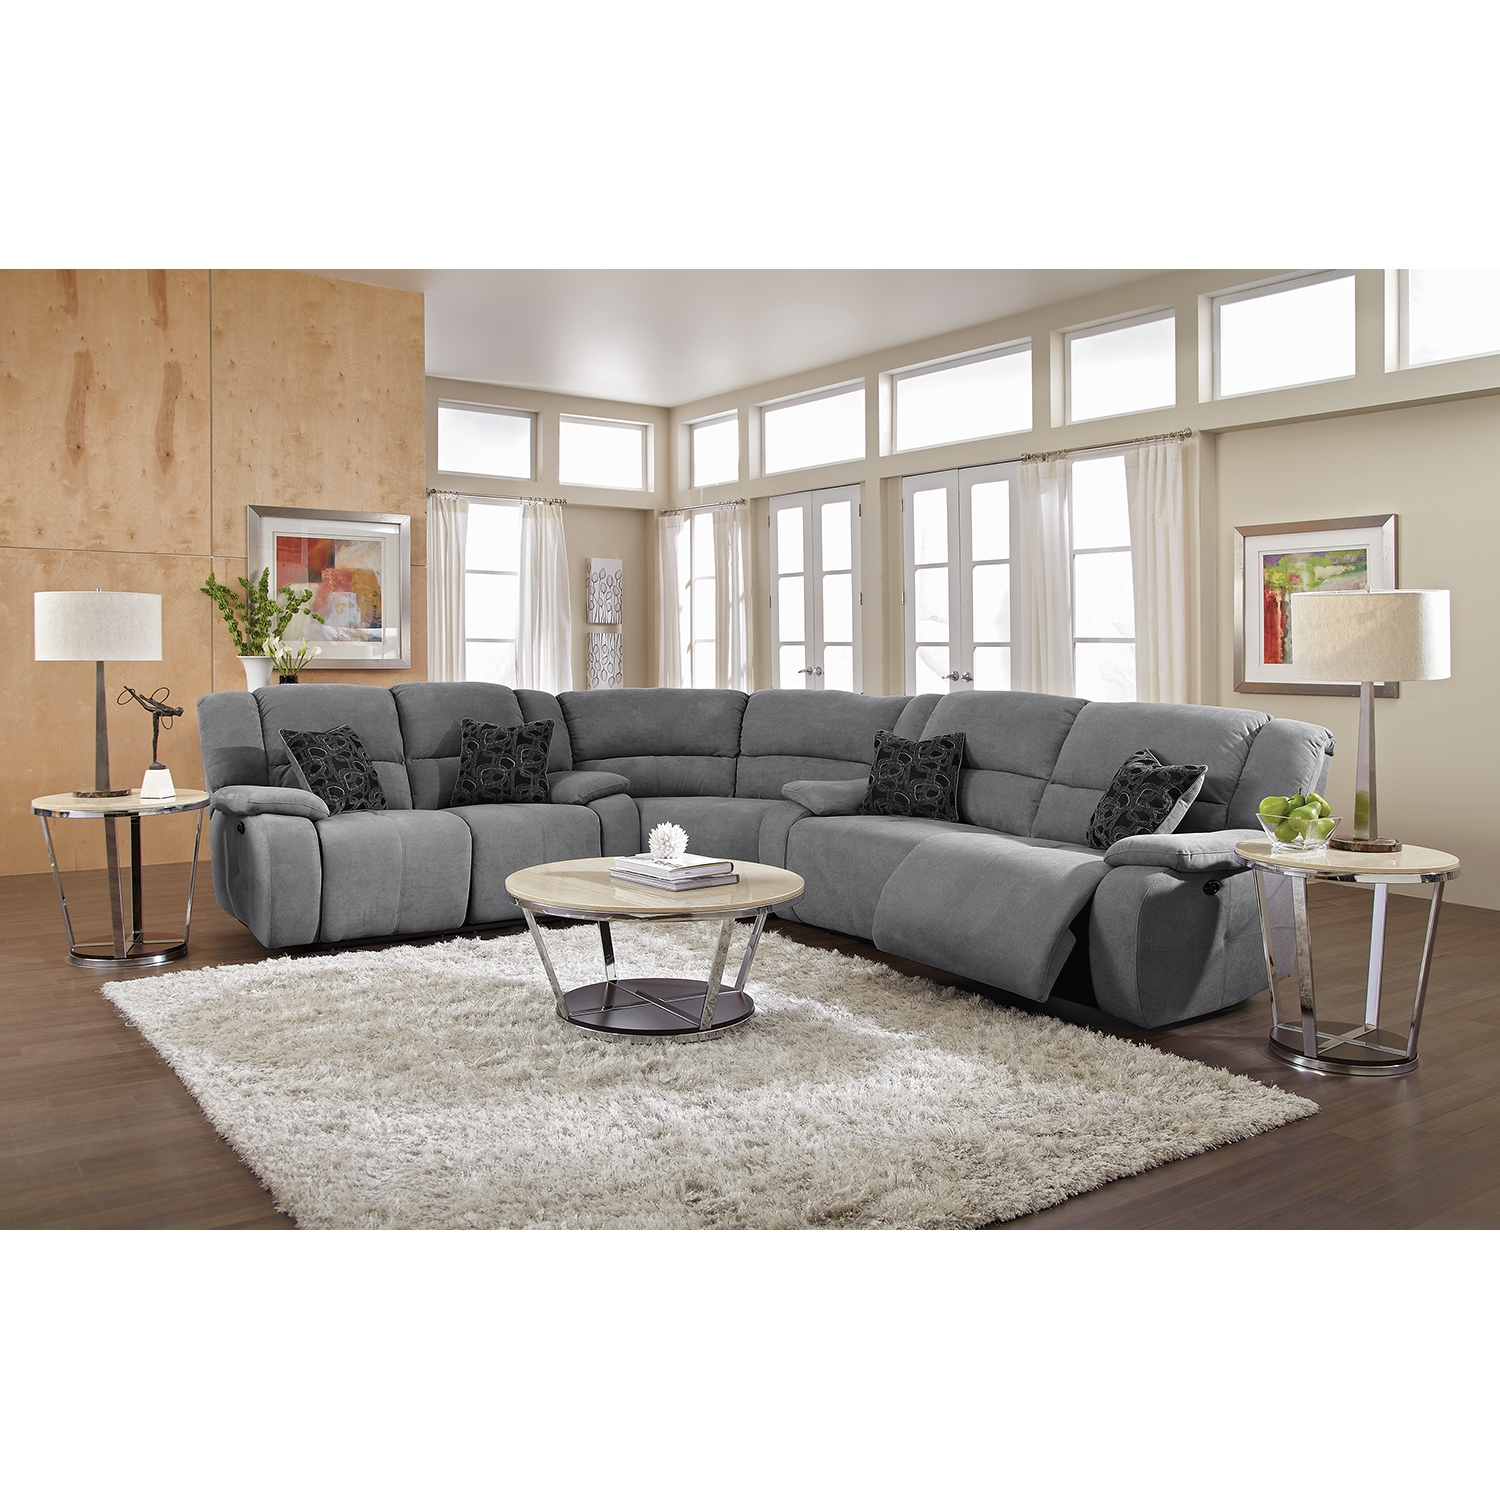 Sectional Couches with Recliners | U Shaped Sectional Sofa | Reclining  Sectional